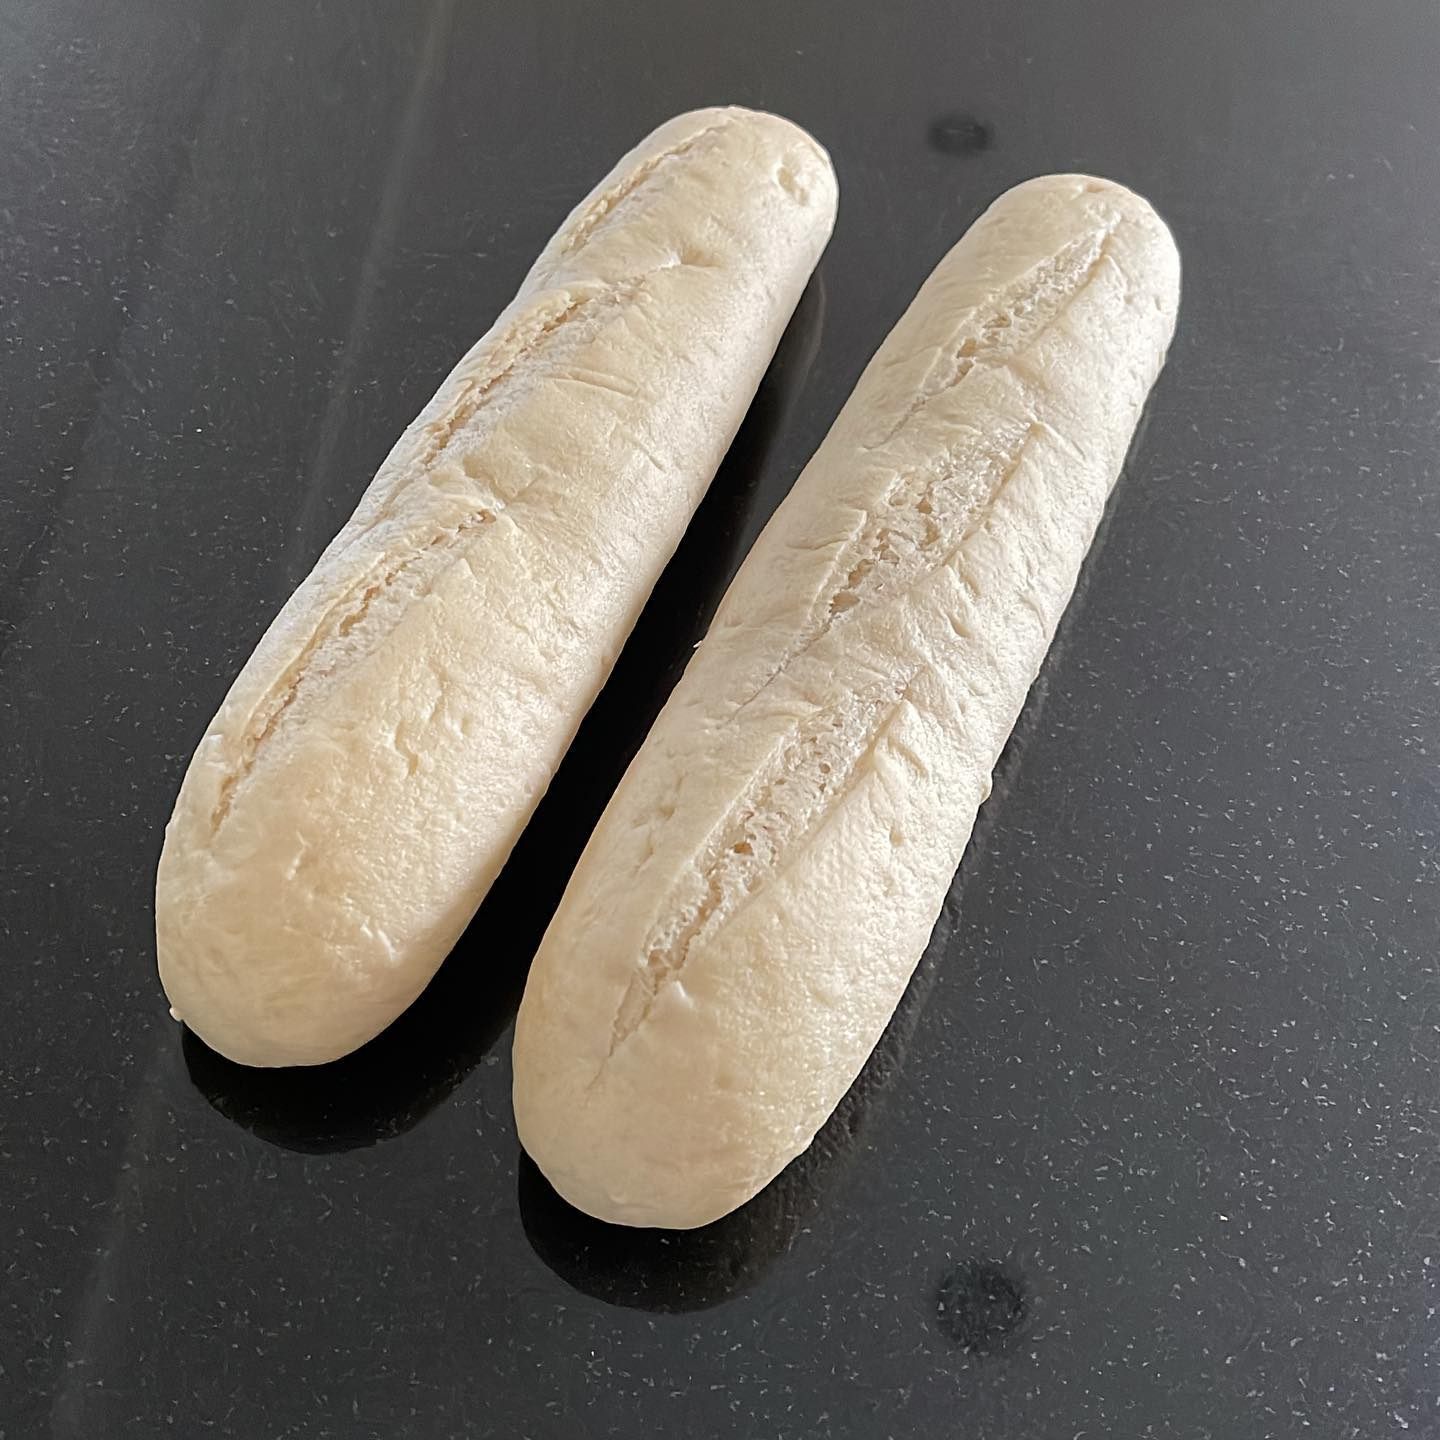 Going for French cuisine today!#hawhawhawhawbaguette!